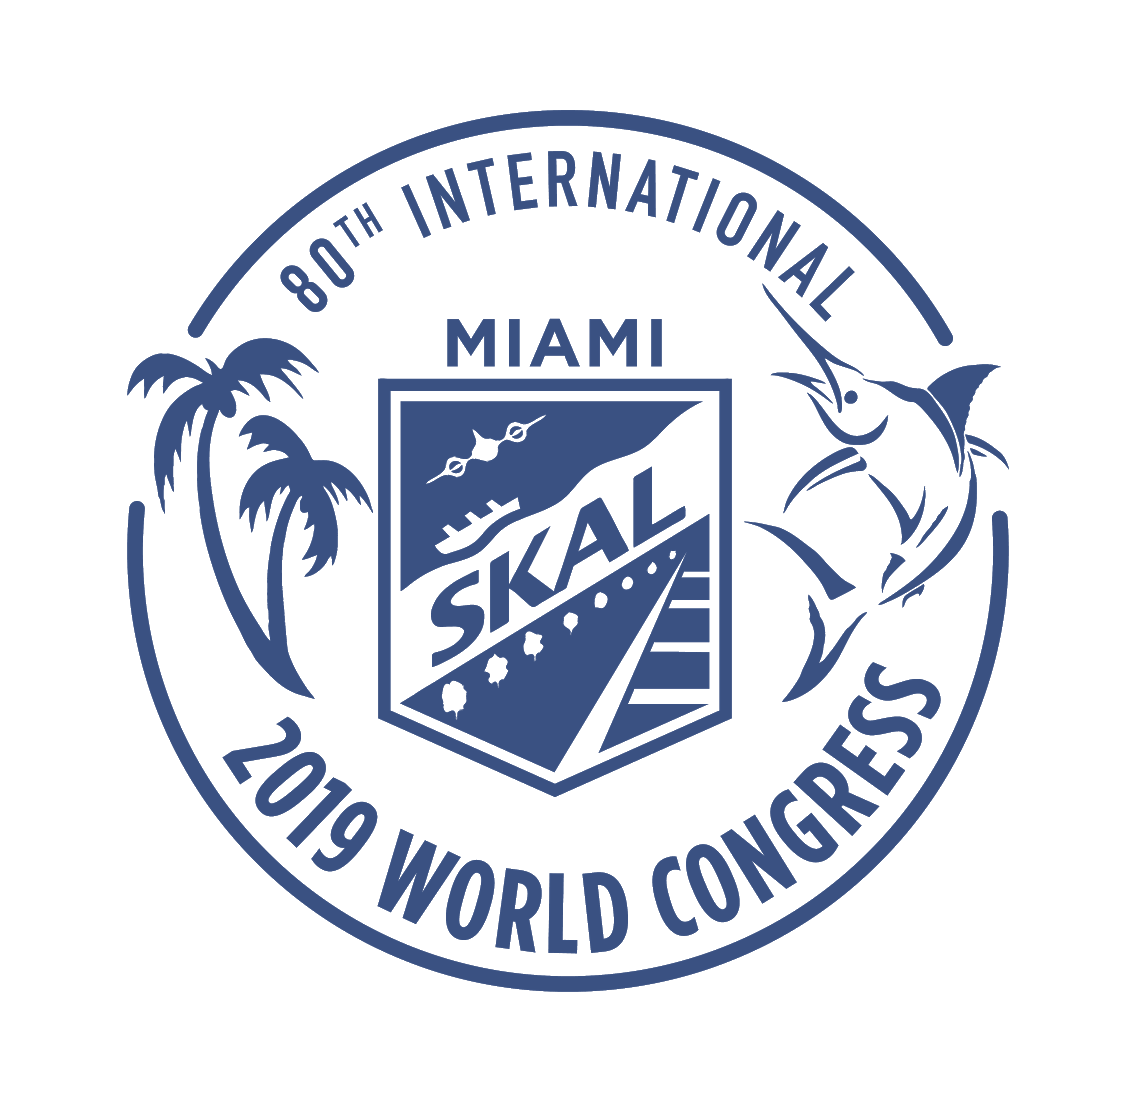 Skal World Congress 2019